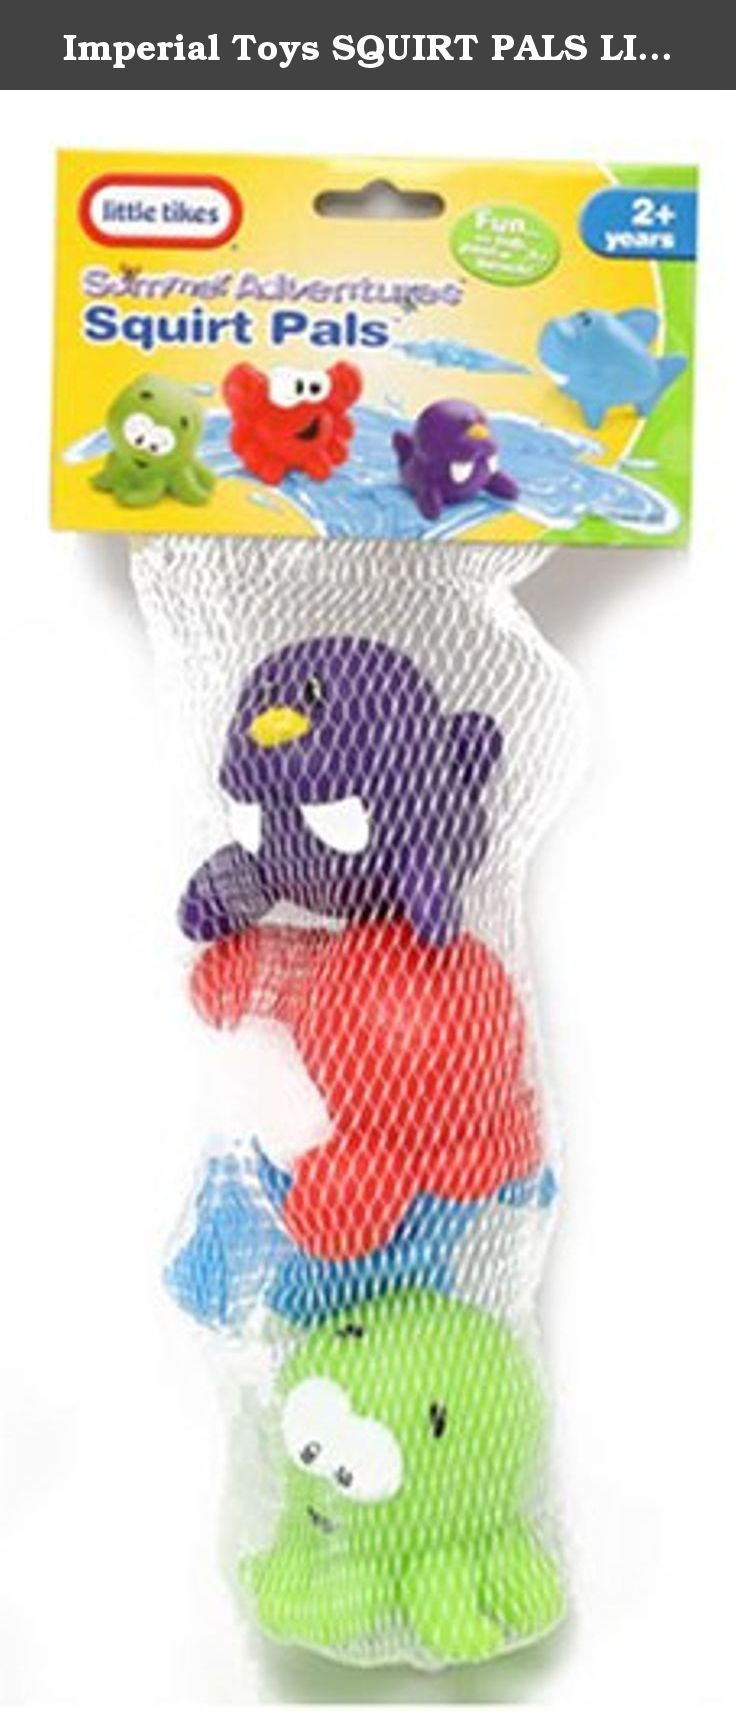 Imperial Toys SQUIRT PALS LITTLE TIKES. Little Tikes Set of 4 Squirt pals Fun for the tub, pool, or beach. Set includes Octopus, Shark, Whale, and Crab. All in Bright Colors.